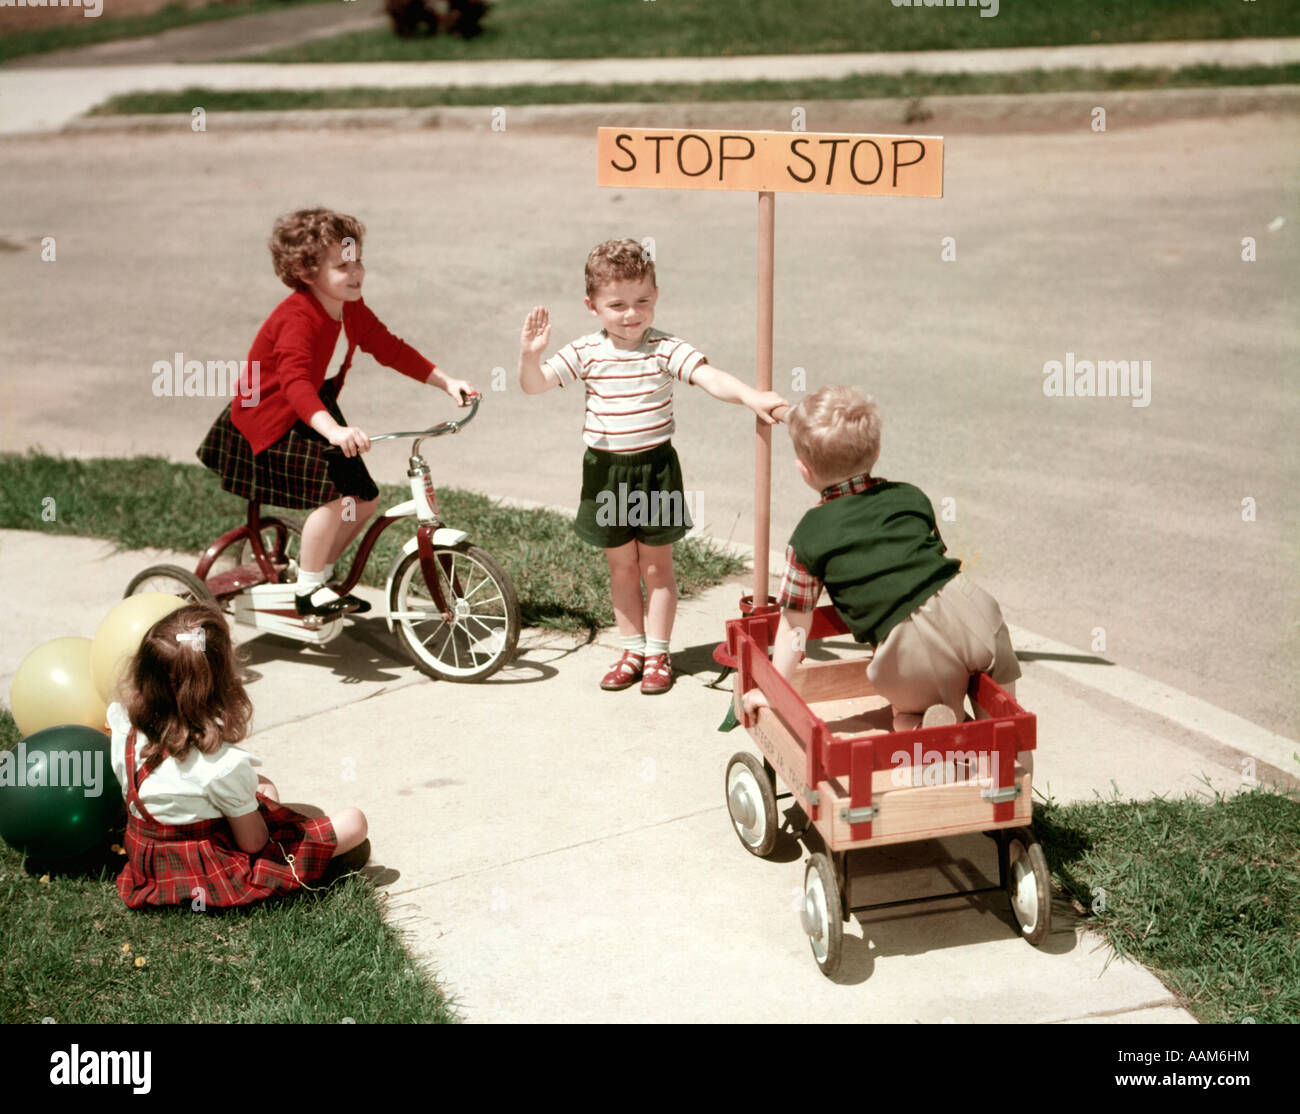 1950s BOYS AND GIRLS OUTDOOR WITH TRICYCLE AND WAGON PLAYING TRAFFIC WITH POLICE STOP SIGN AMERICANA NOSTALGIA - Stock Image